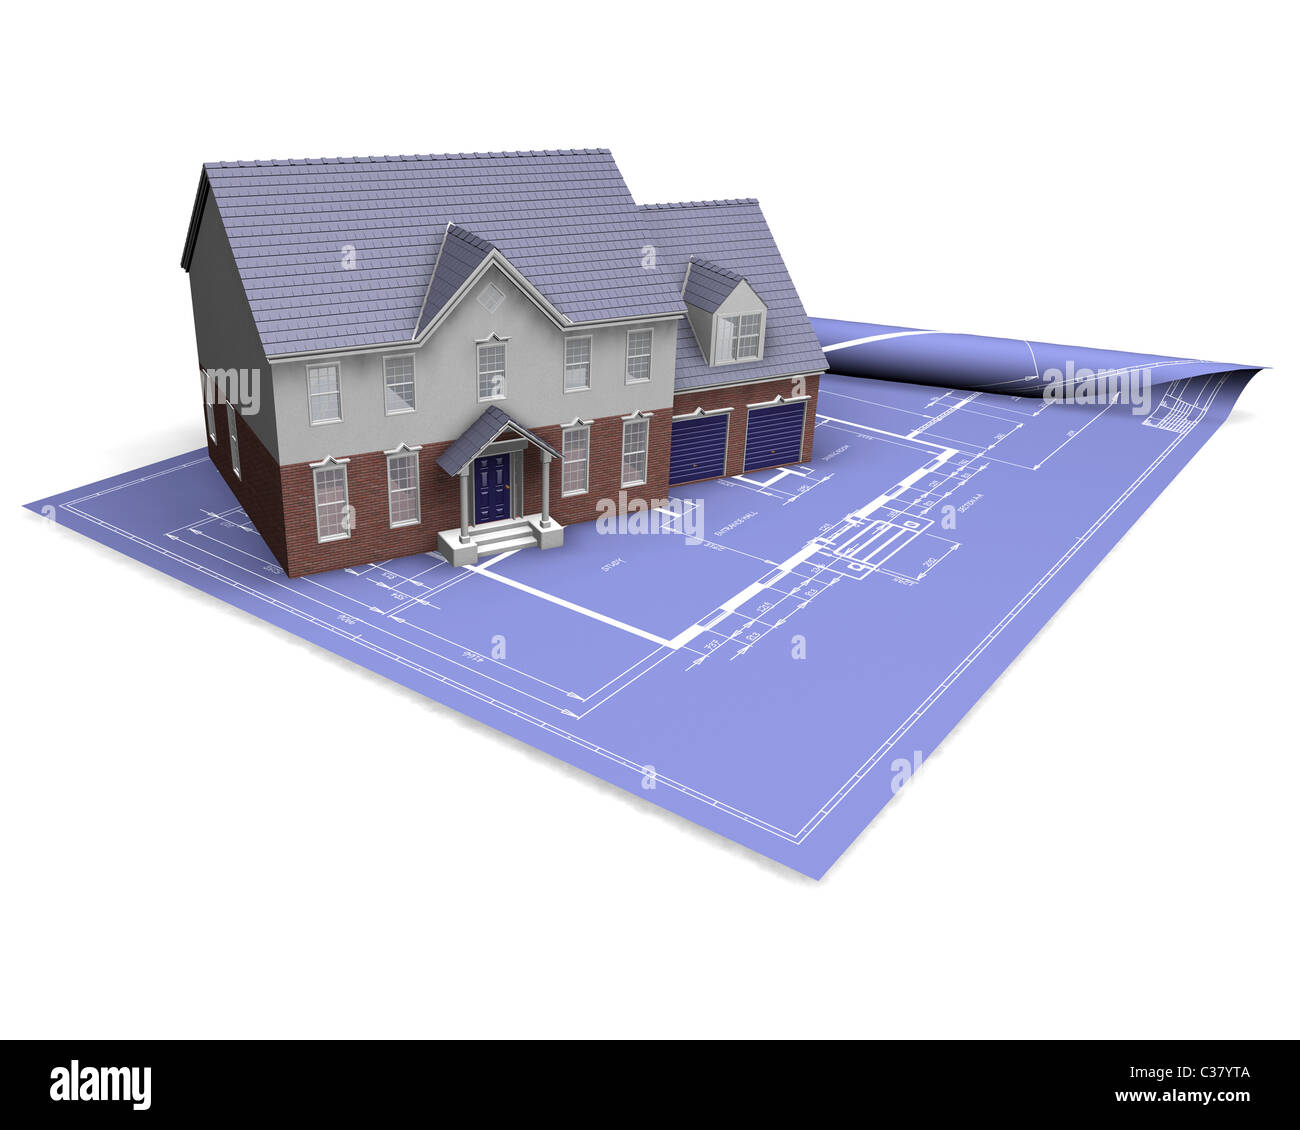 3D render of a modern house on blueprints - Stock Image